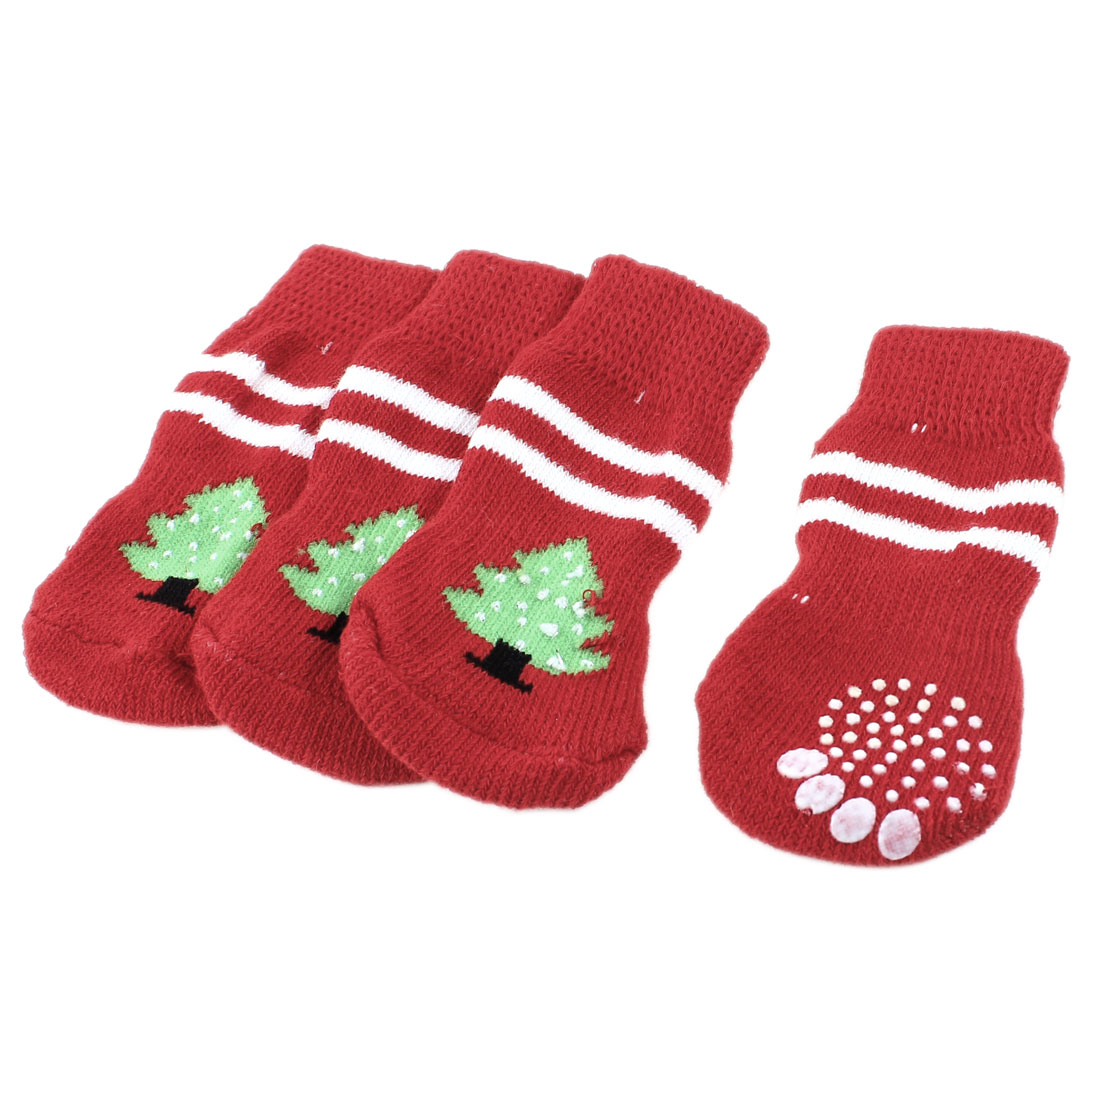 2 Pairs Red Nonslip Christmas Tree Pattern Acrylic Dog Puppy Pet Socks Size L